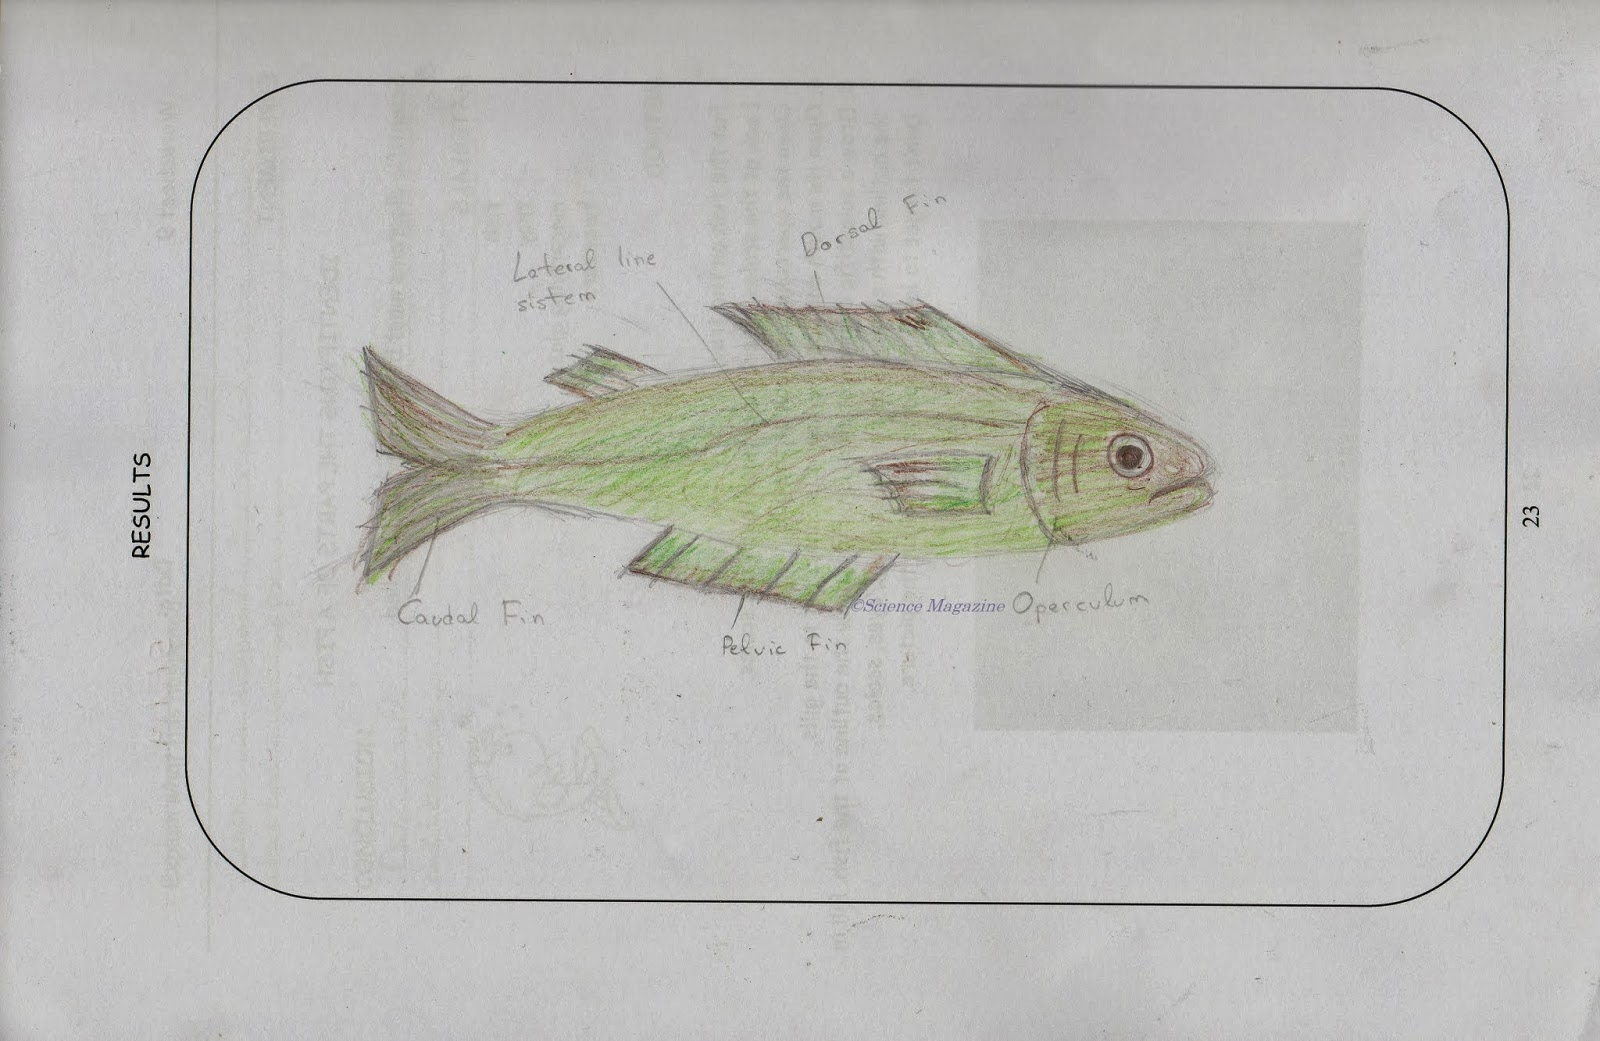 Science Magazine Studying The Anatomy Of A Fish And